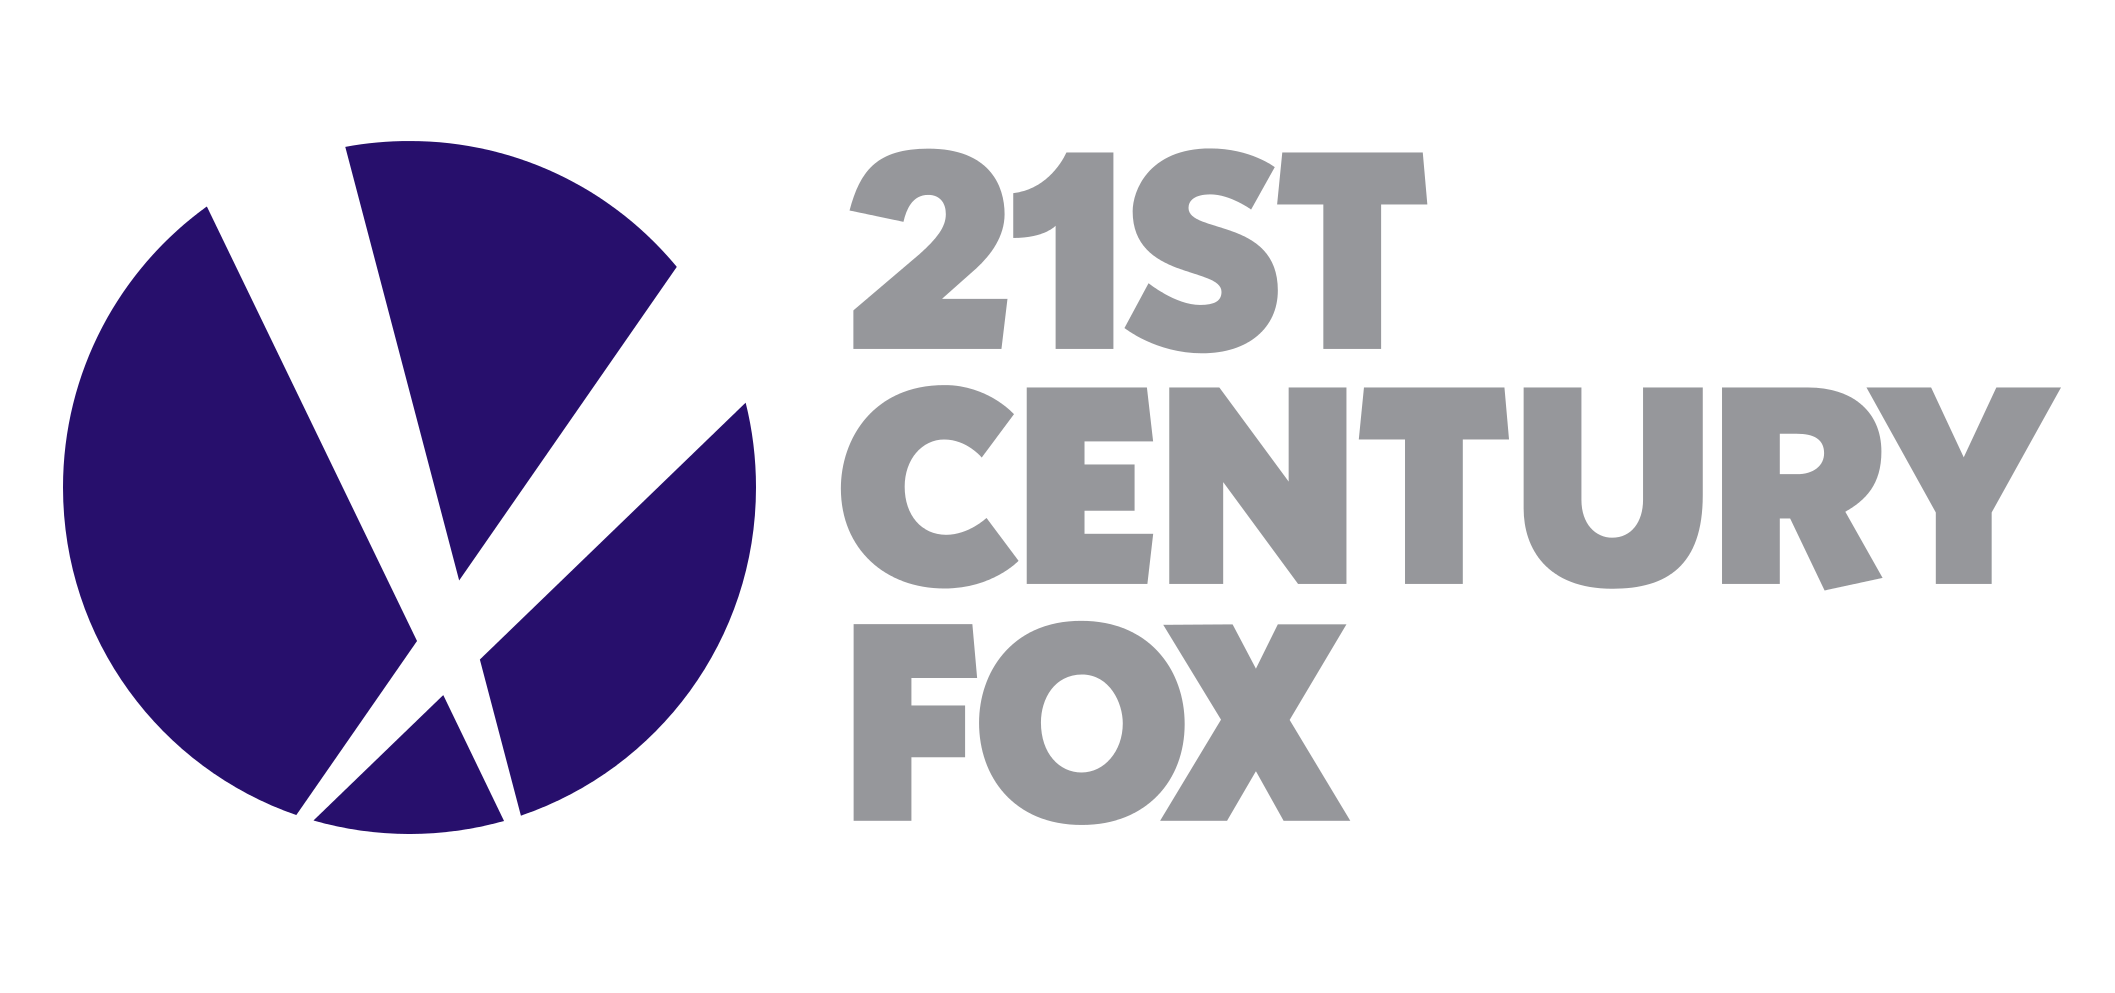 21st Century Fox Png - Download 21st Century Fox Logo PNG Image for Free